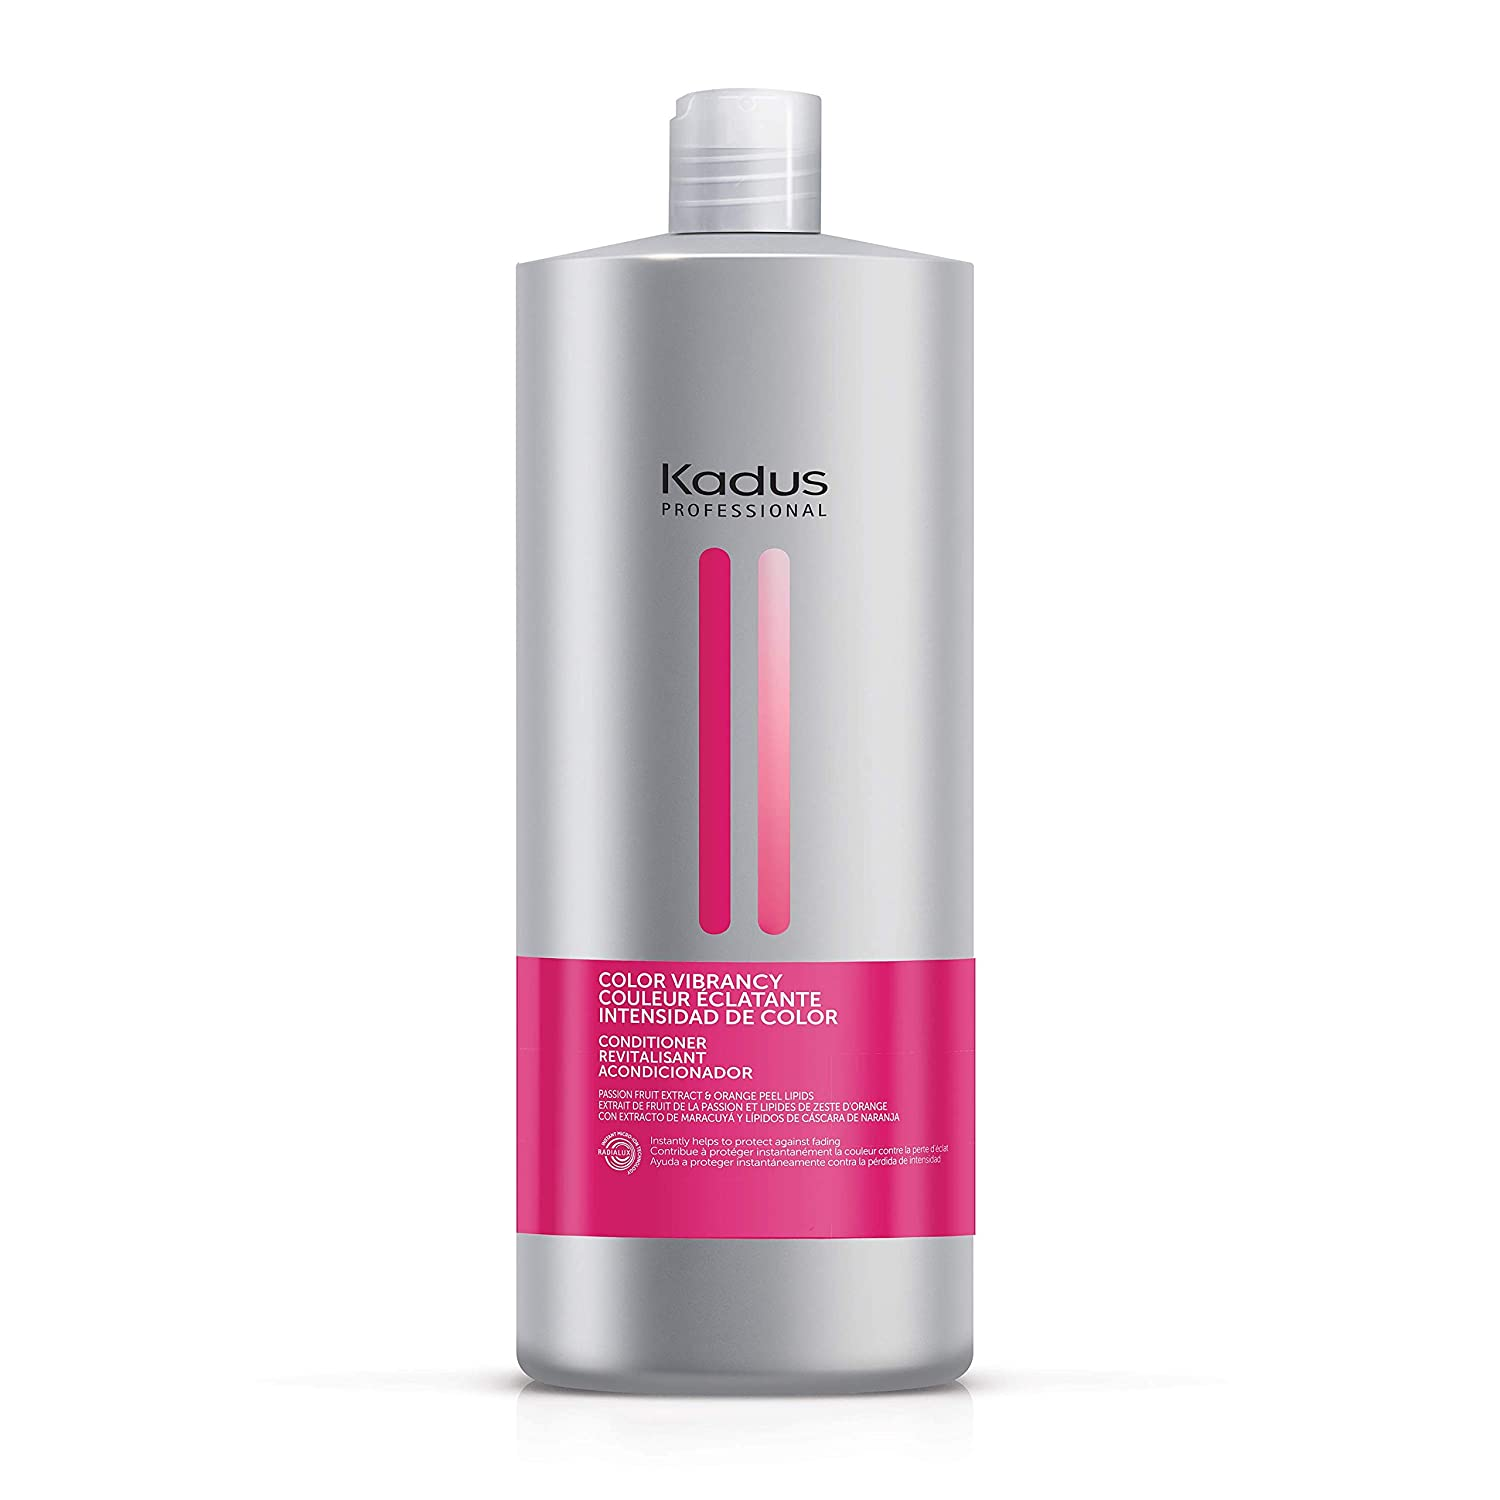 Kadus Professional Color Vibrancy Shampoo And Conditioners For Hair Premium Beauty